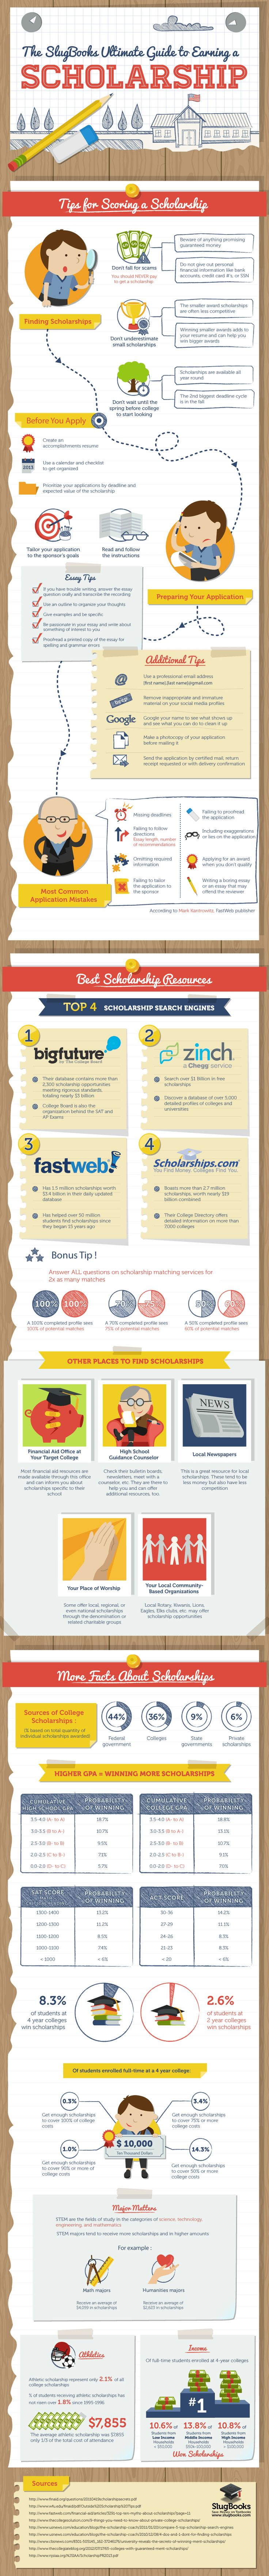 This easy visual will give parents and their students a ton of tips to help them win more college scholarships. Perfect for sharing and pinning!